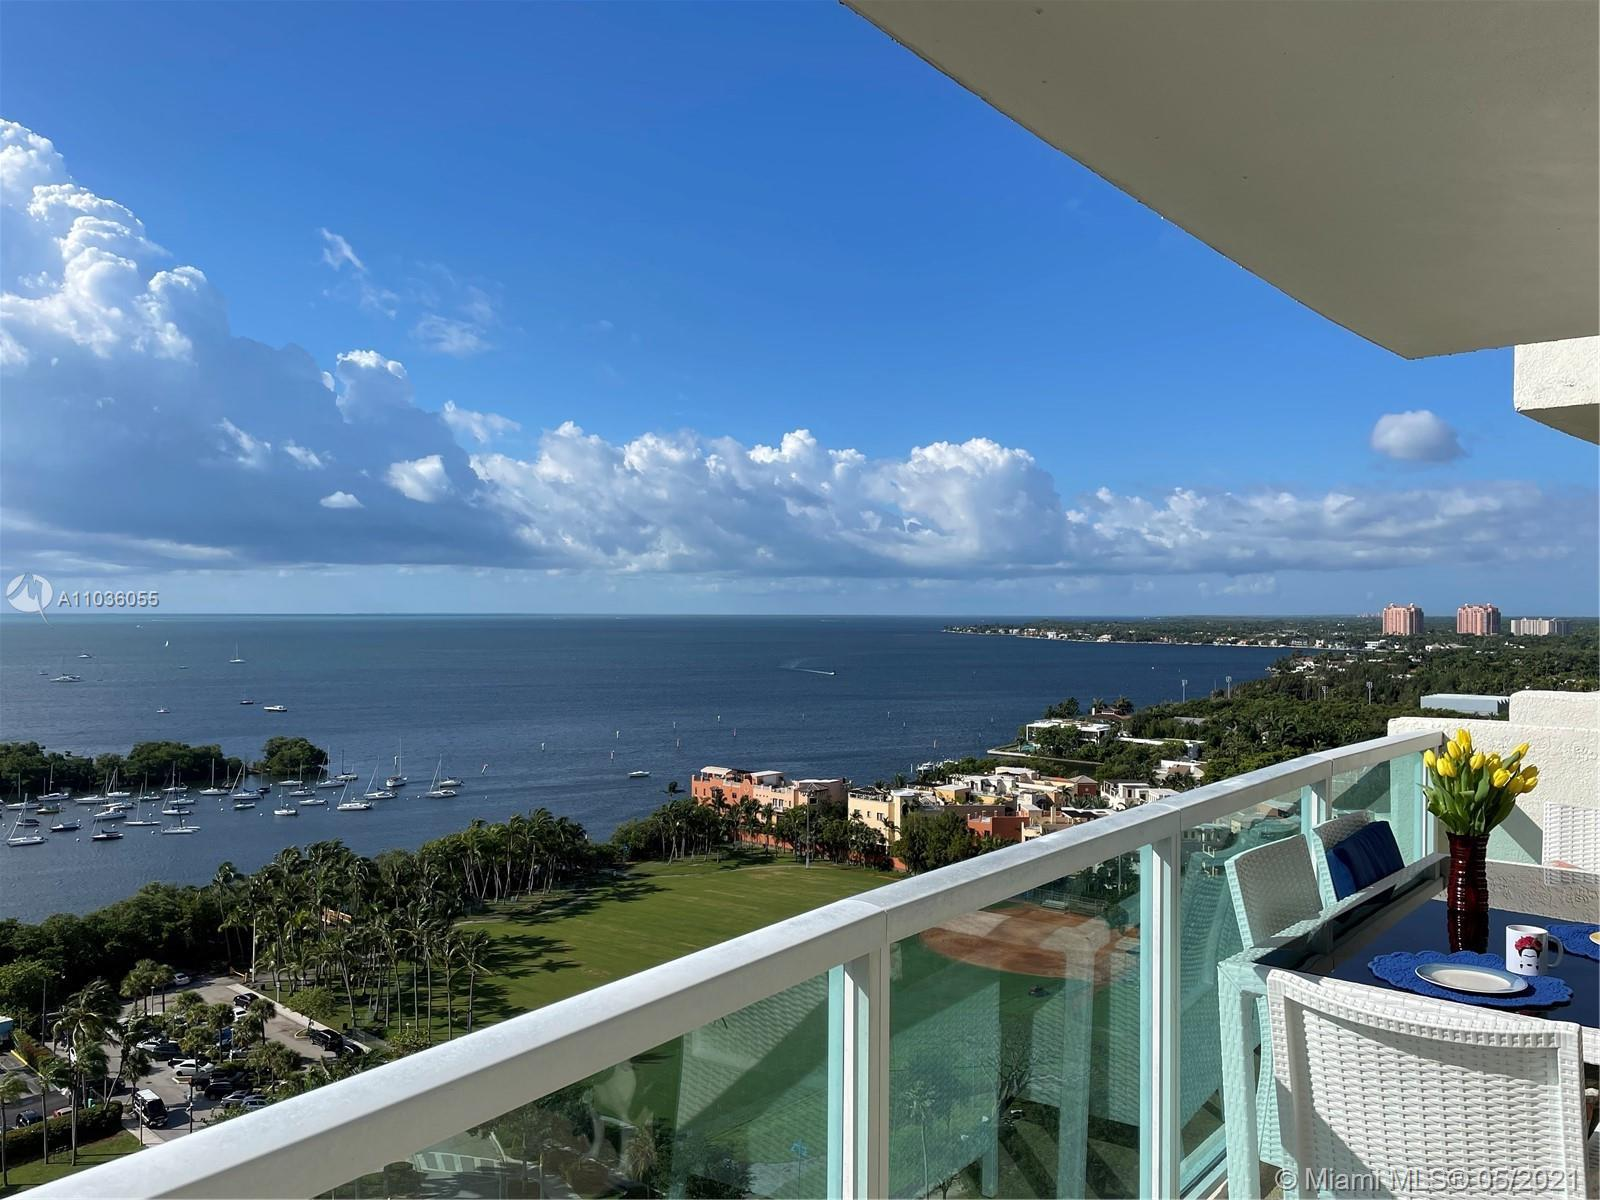 UNOBSTRUCTED WATER VIEWS! WRAP AROUND BALCONY. Prop. manager and maid service avail. Covered parking